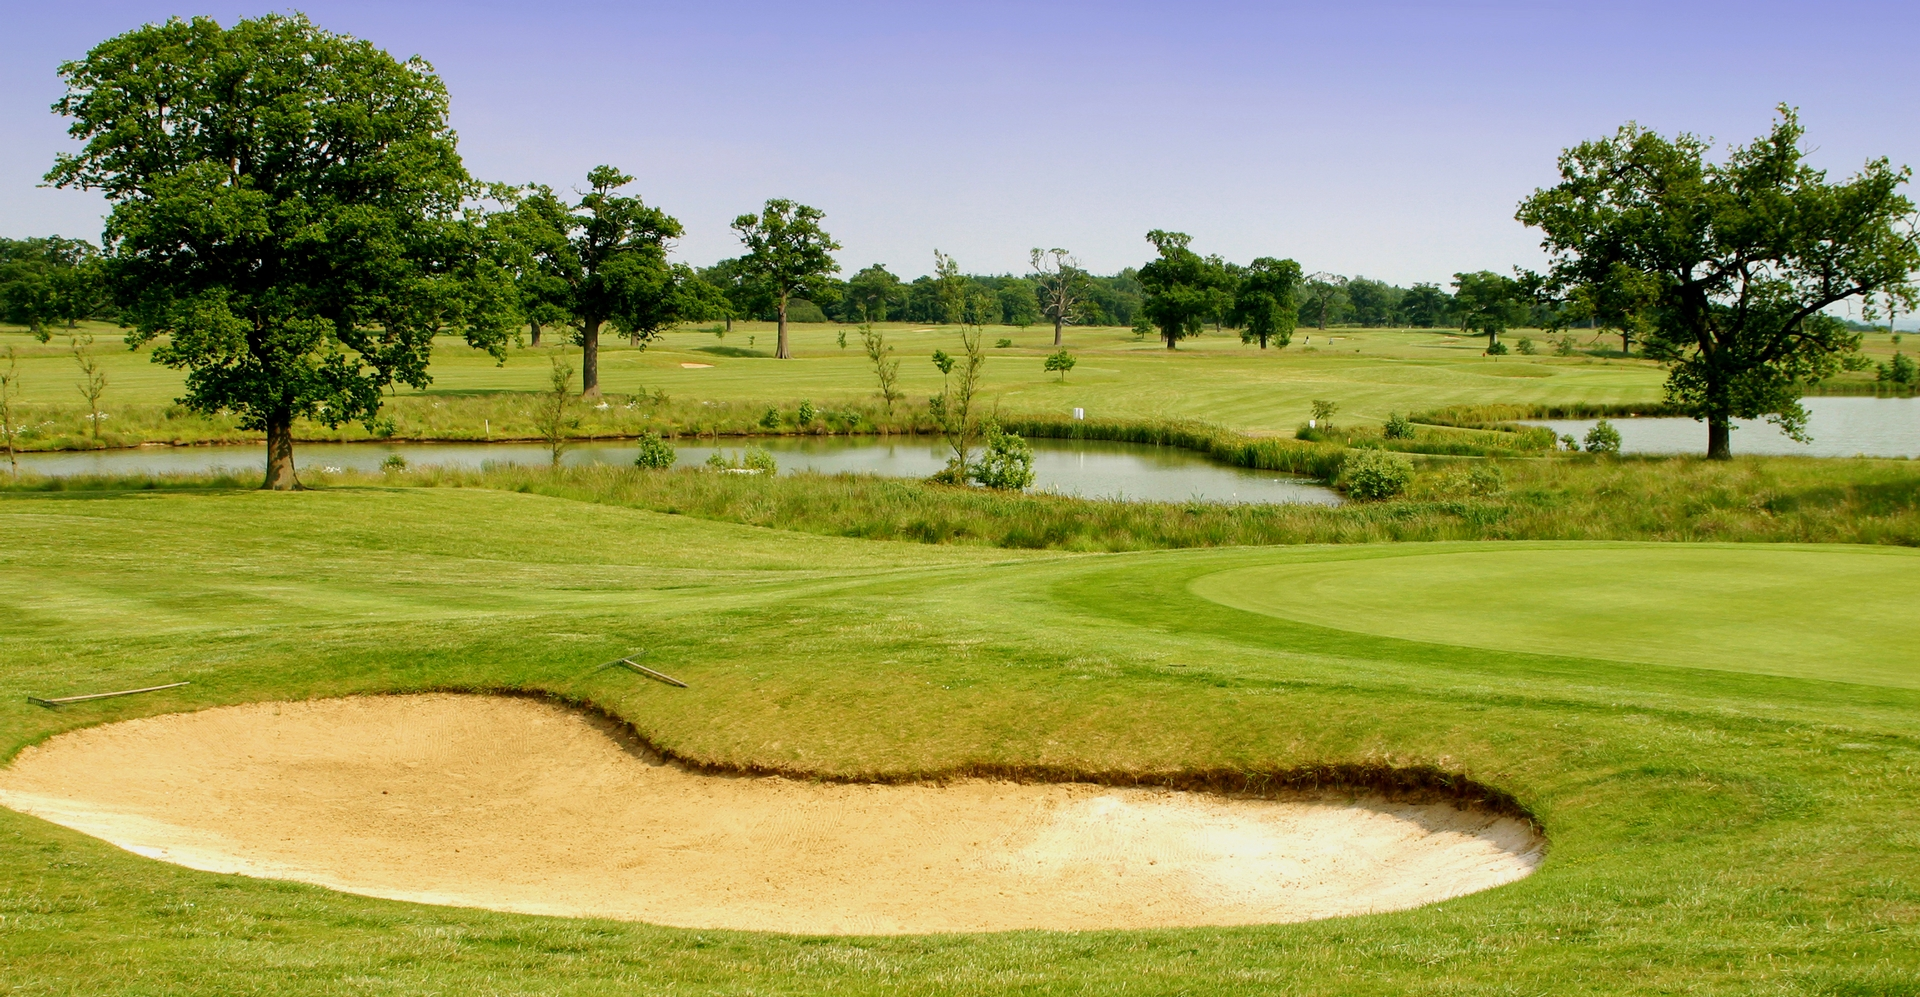 Whittlebury Park Golf Course